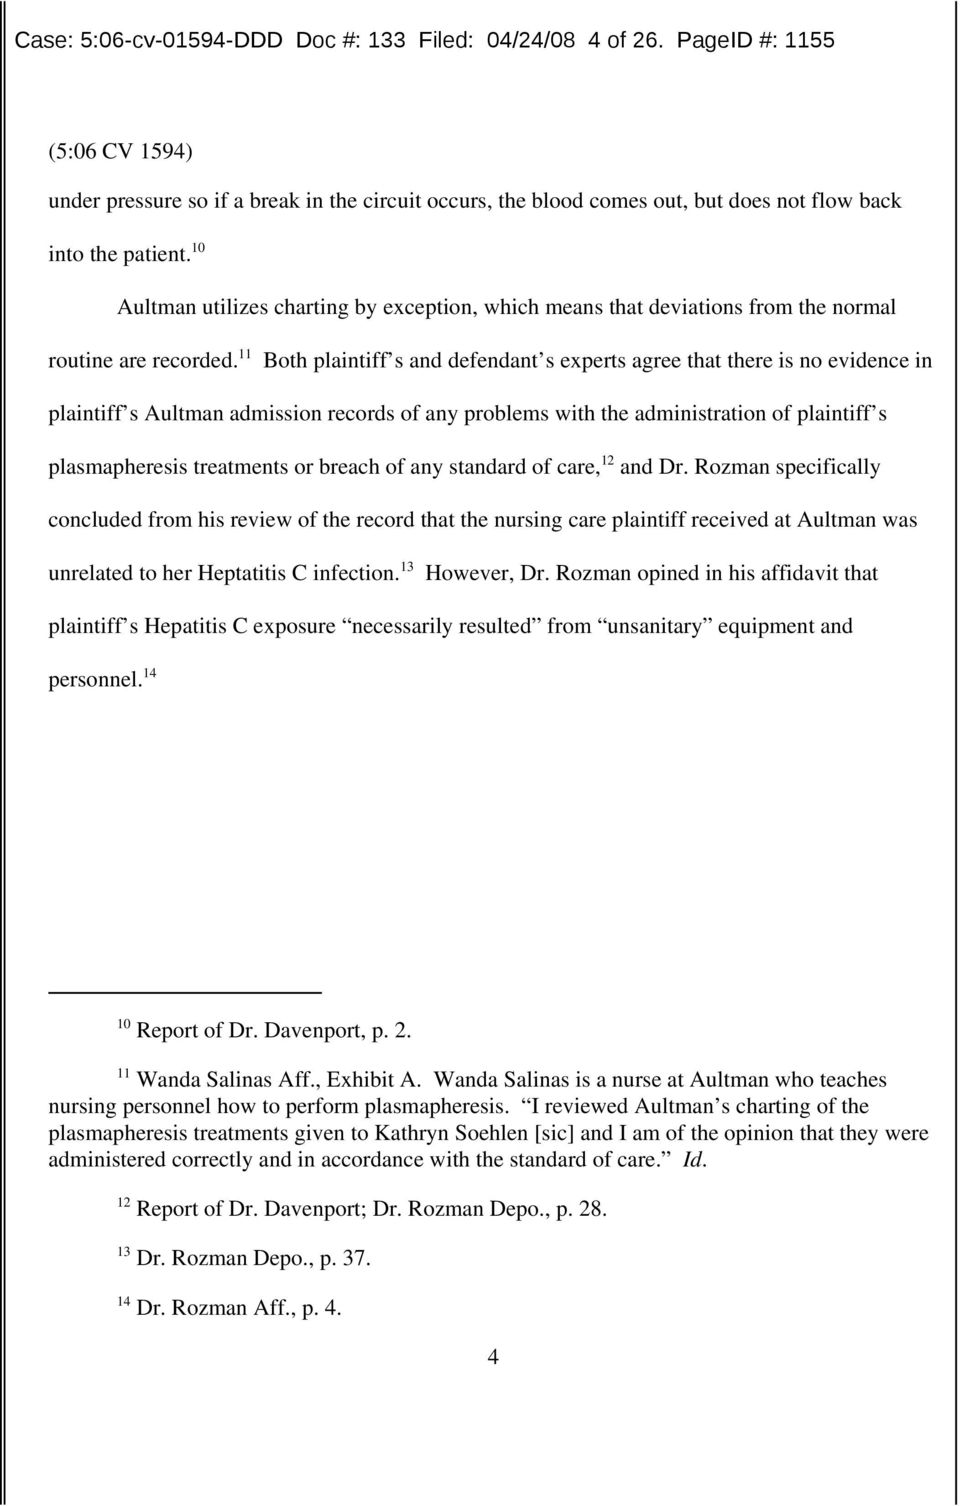 11 Both plaintiff s and defendant s experts agree that there is no evidence in plaintiff s Aultman admission records of any problems with the administration of plaintiff s plasmapheresis treatments